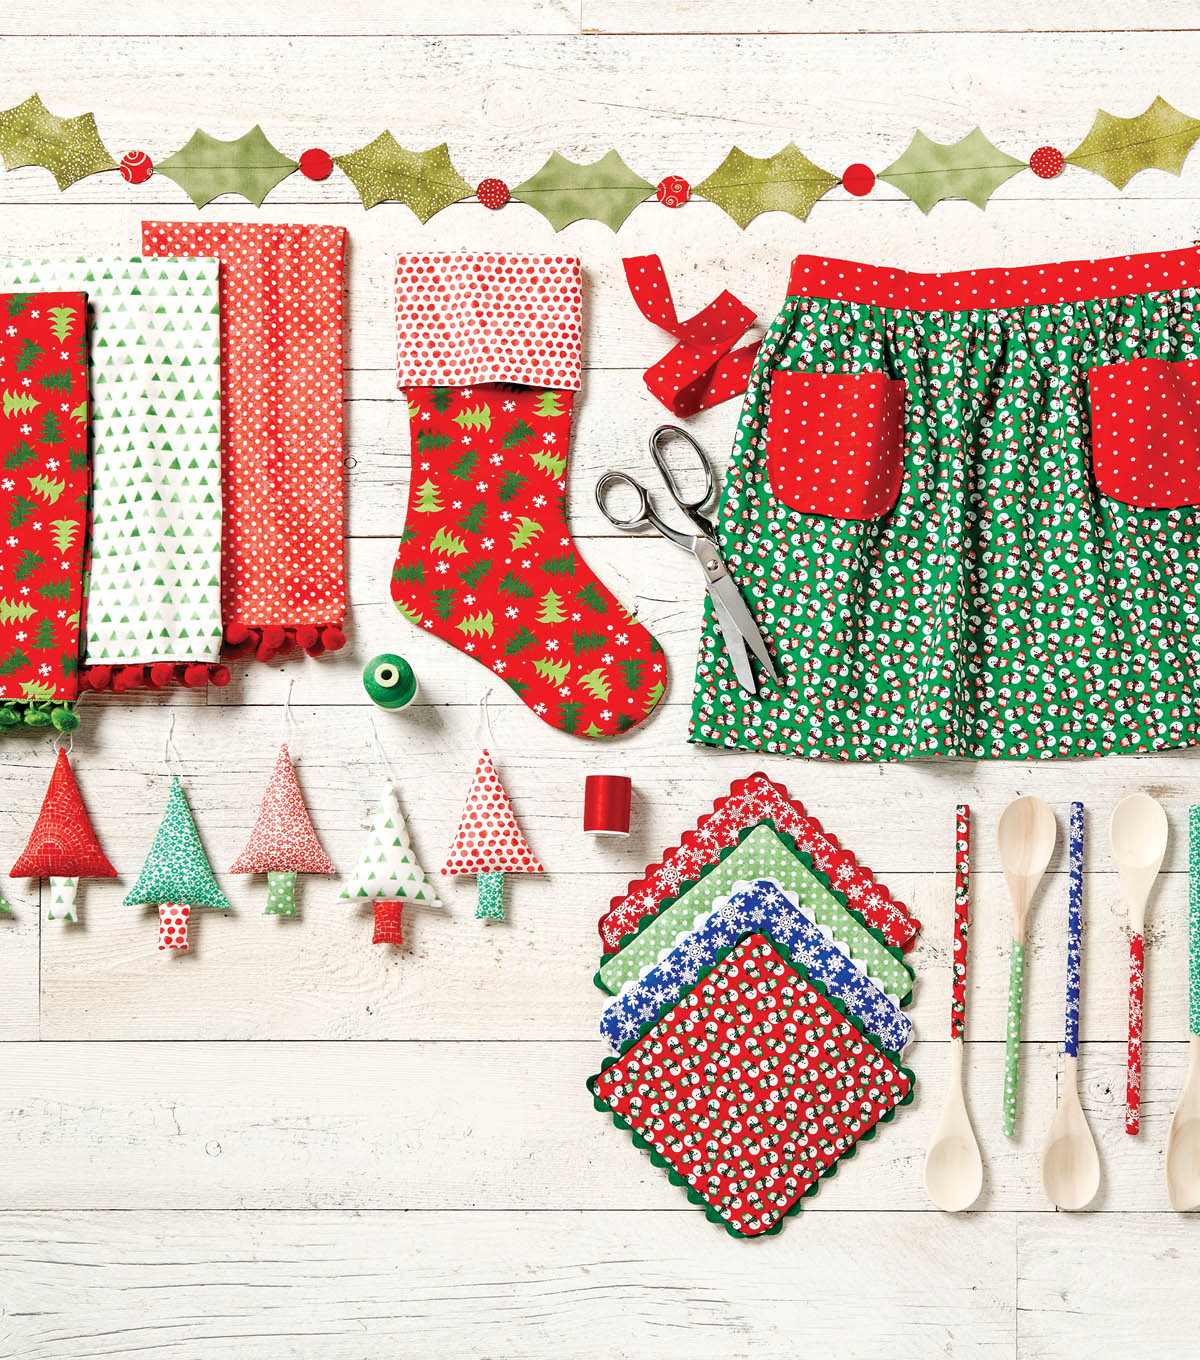 Jo Ann Fabrics And Crafts Mall: How To Make A Holly Leaf Garland